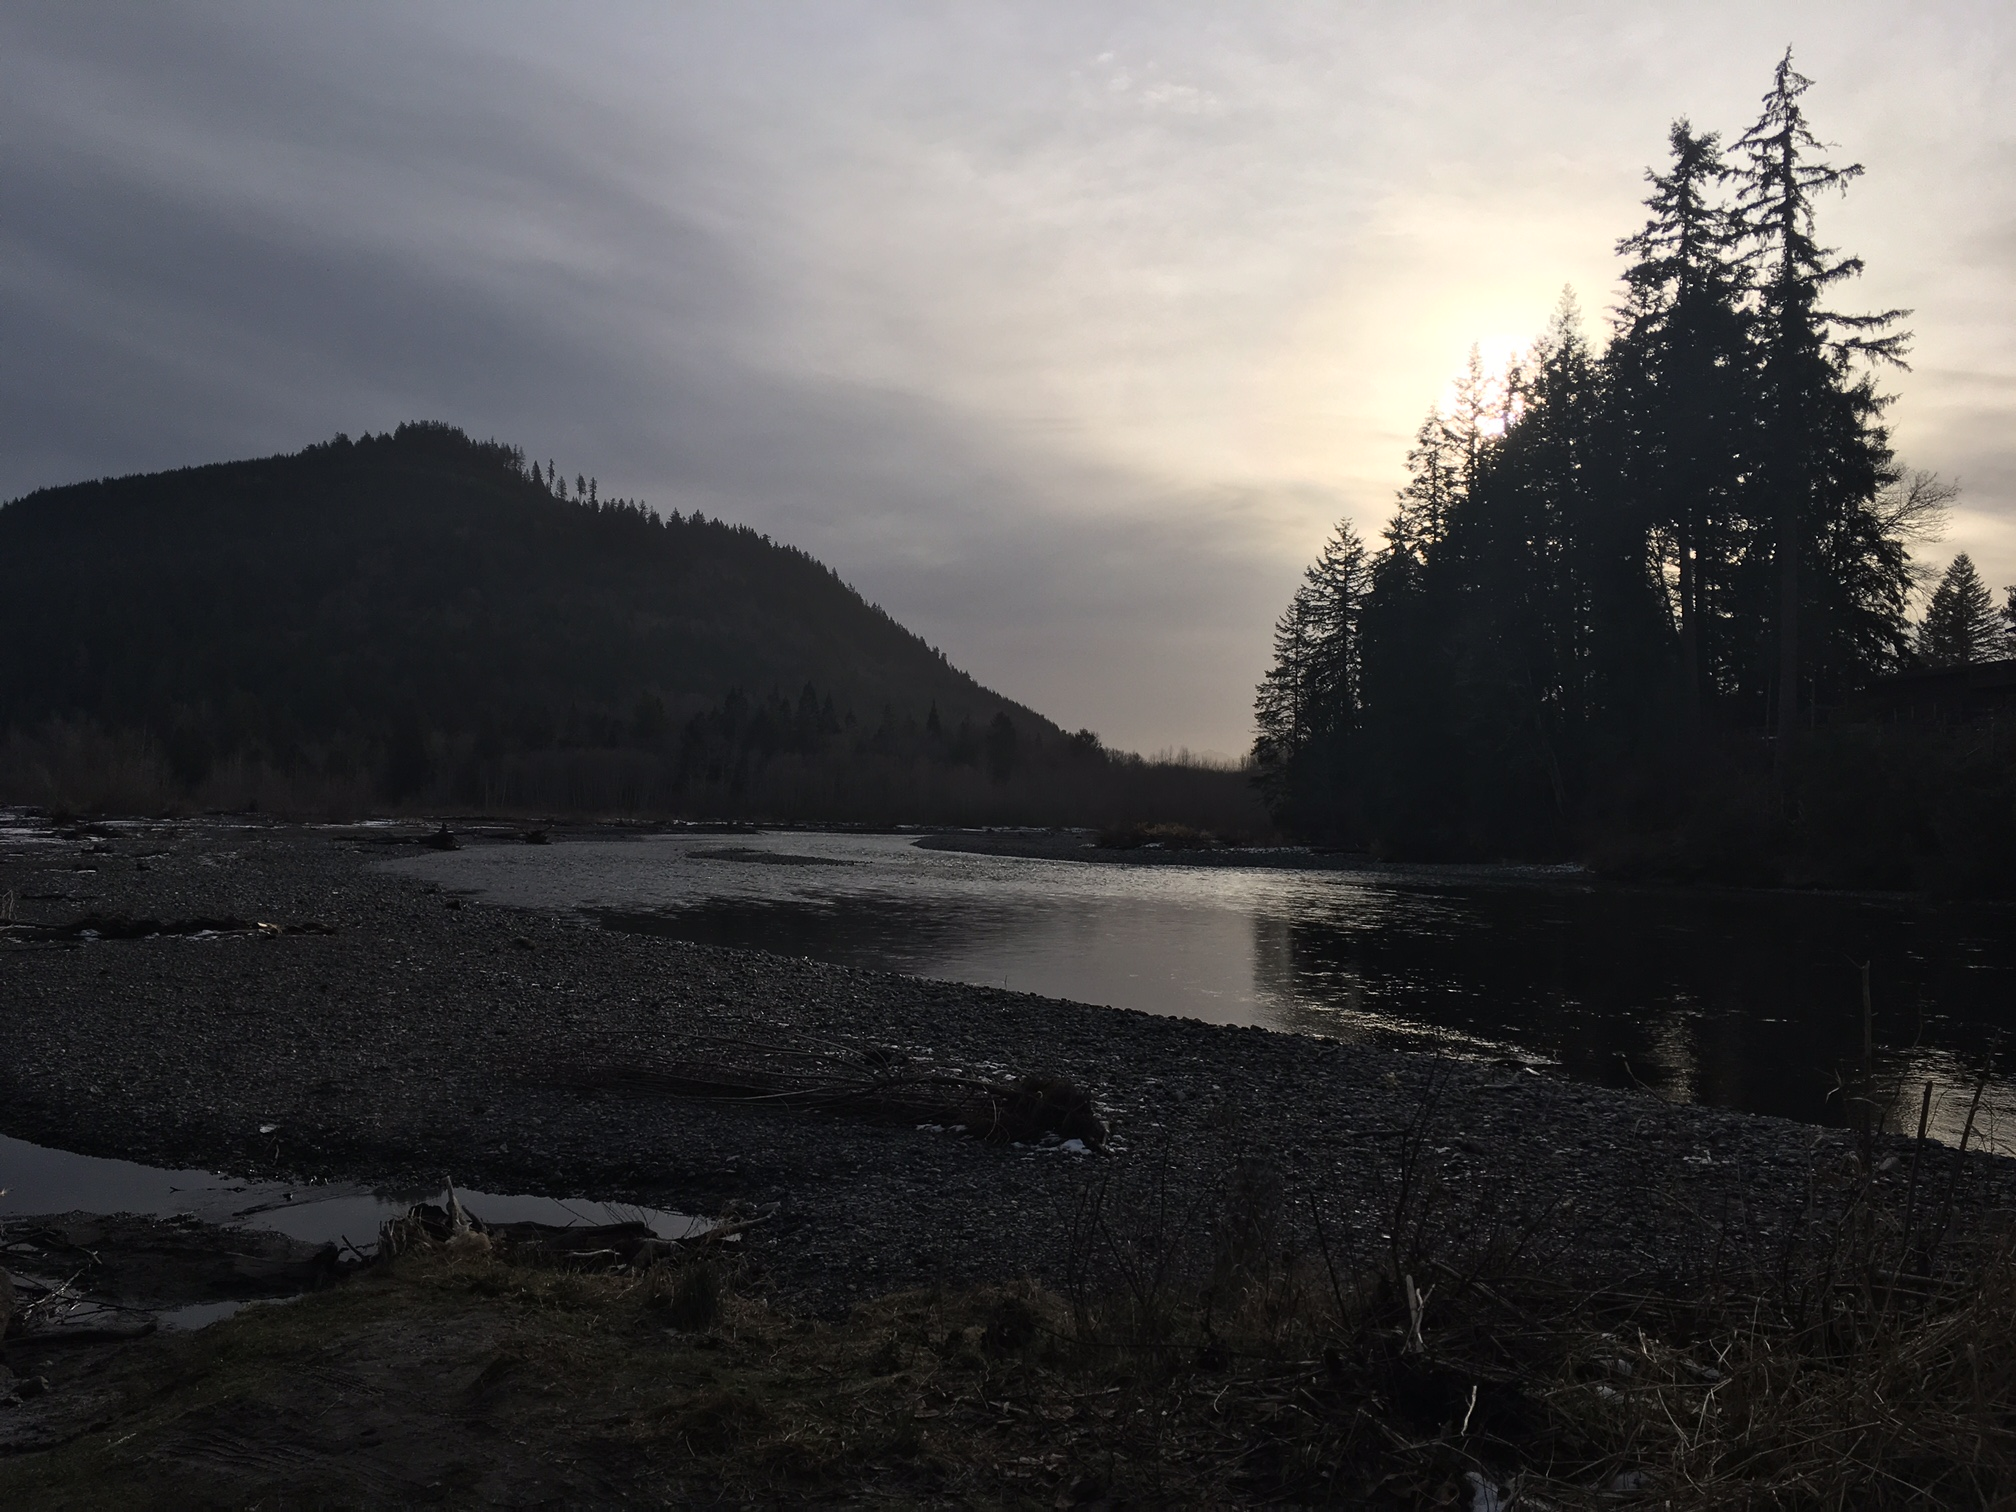 Nooksack River - North Fork and Middle Fork at the Welcome bridge. Taken at 2 PM on the shortest day of the year. Credit: Holly Roger